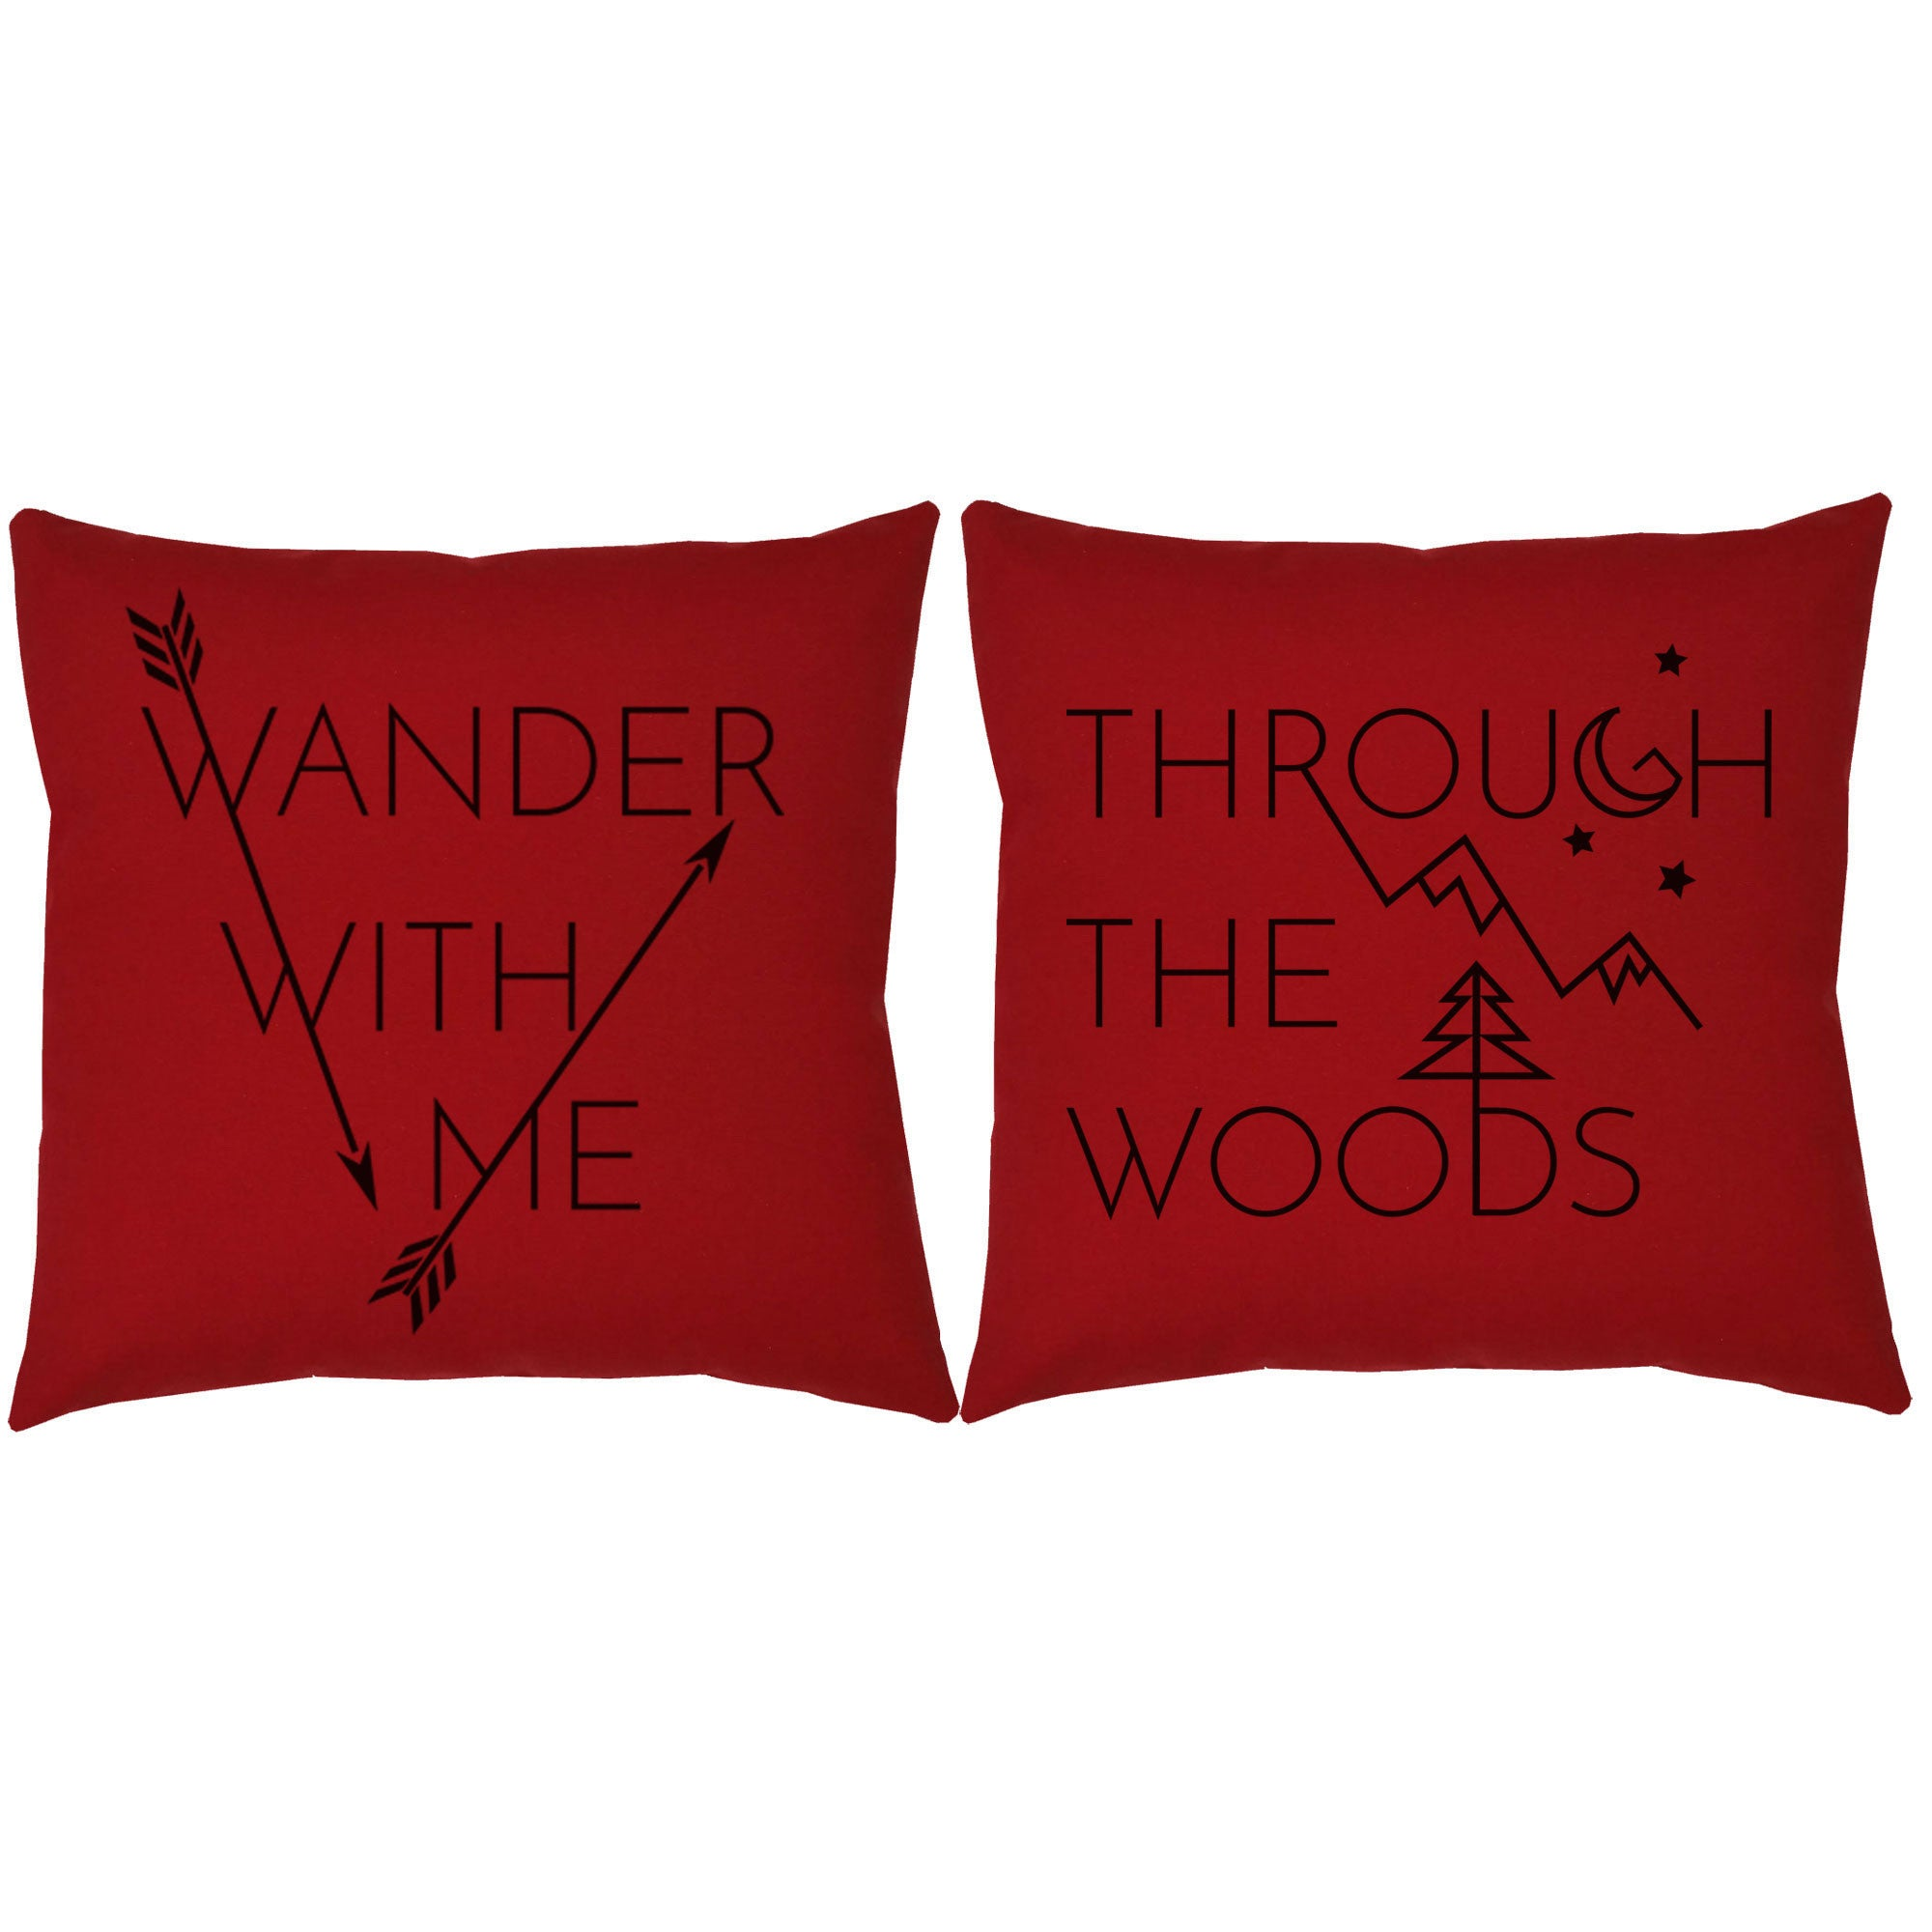 throw red free shipping over acrylic home product decorative overstock pillow pillows garden williamsport woolrich orders on